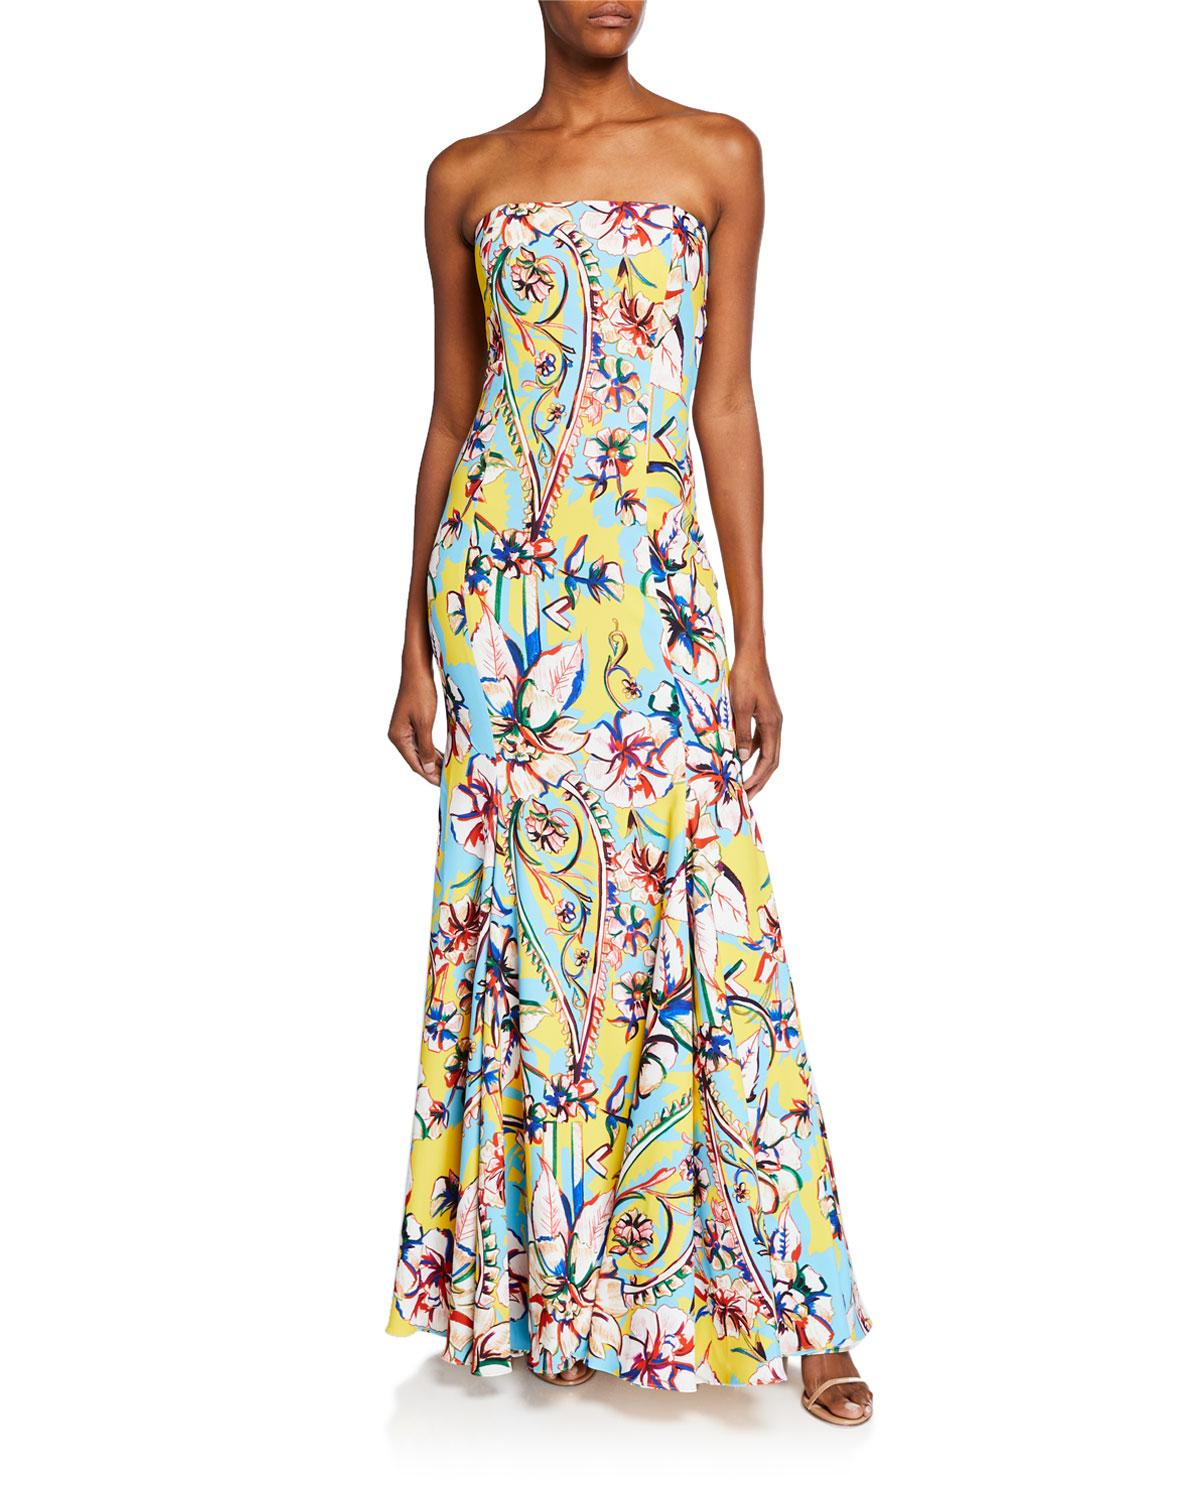 bf09b4988d4cd Lyst - Badgley Mischka Couture-print Strapless Bow-back Gown in Yellow